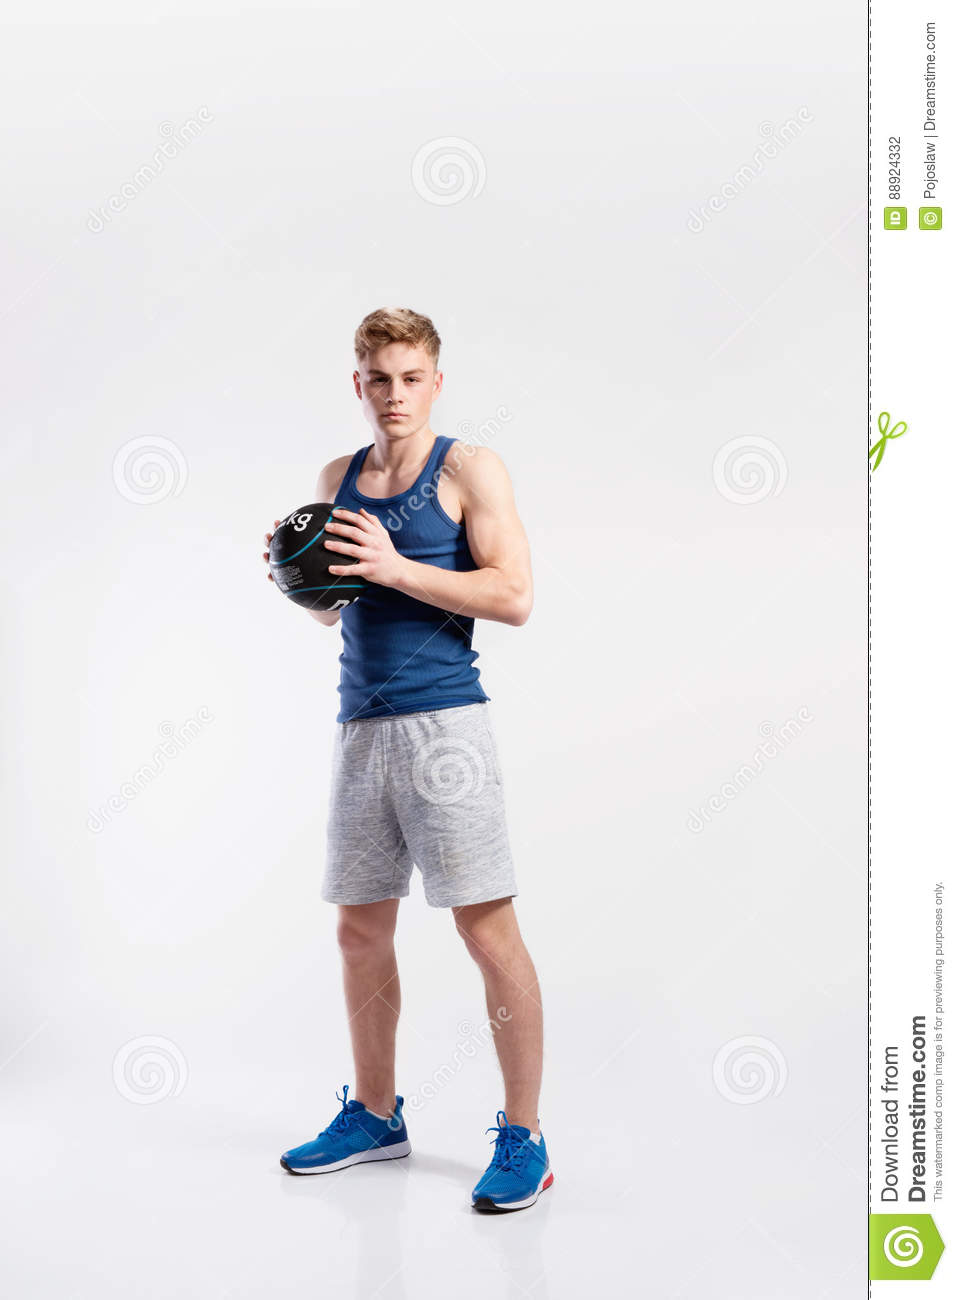 306bf726fef73 Handsome hipster fitness man in blue tank top shirt and gray shorts holding  medicene ball. Studio shot on gray background.